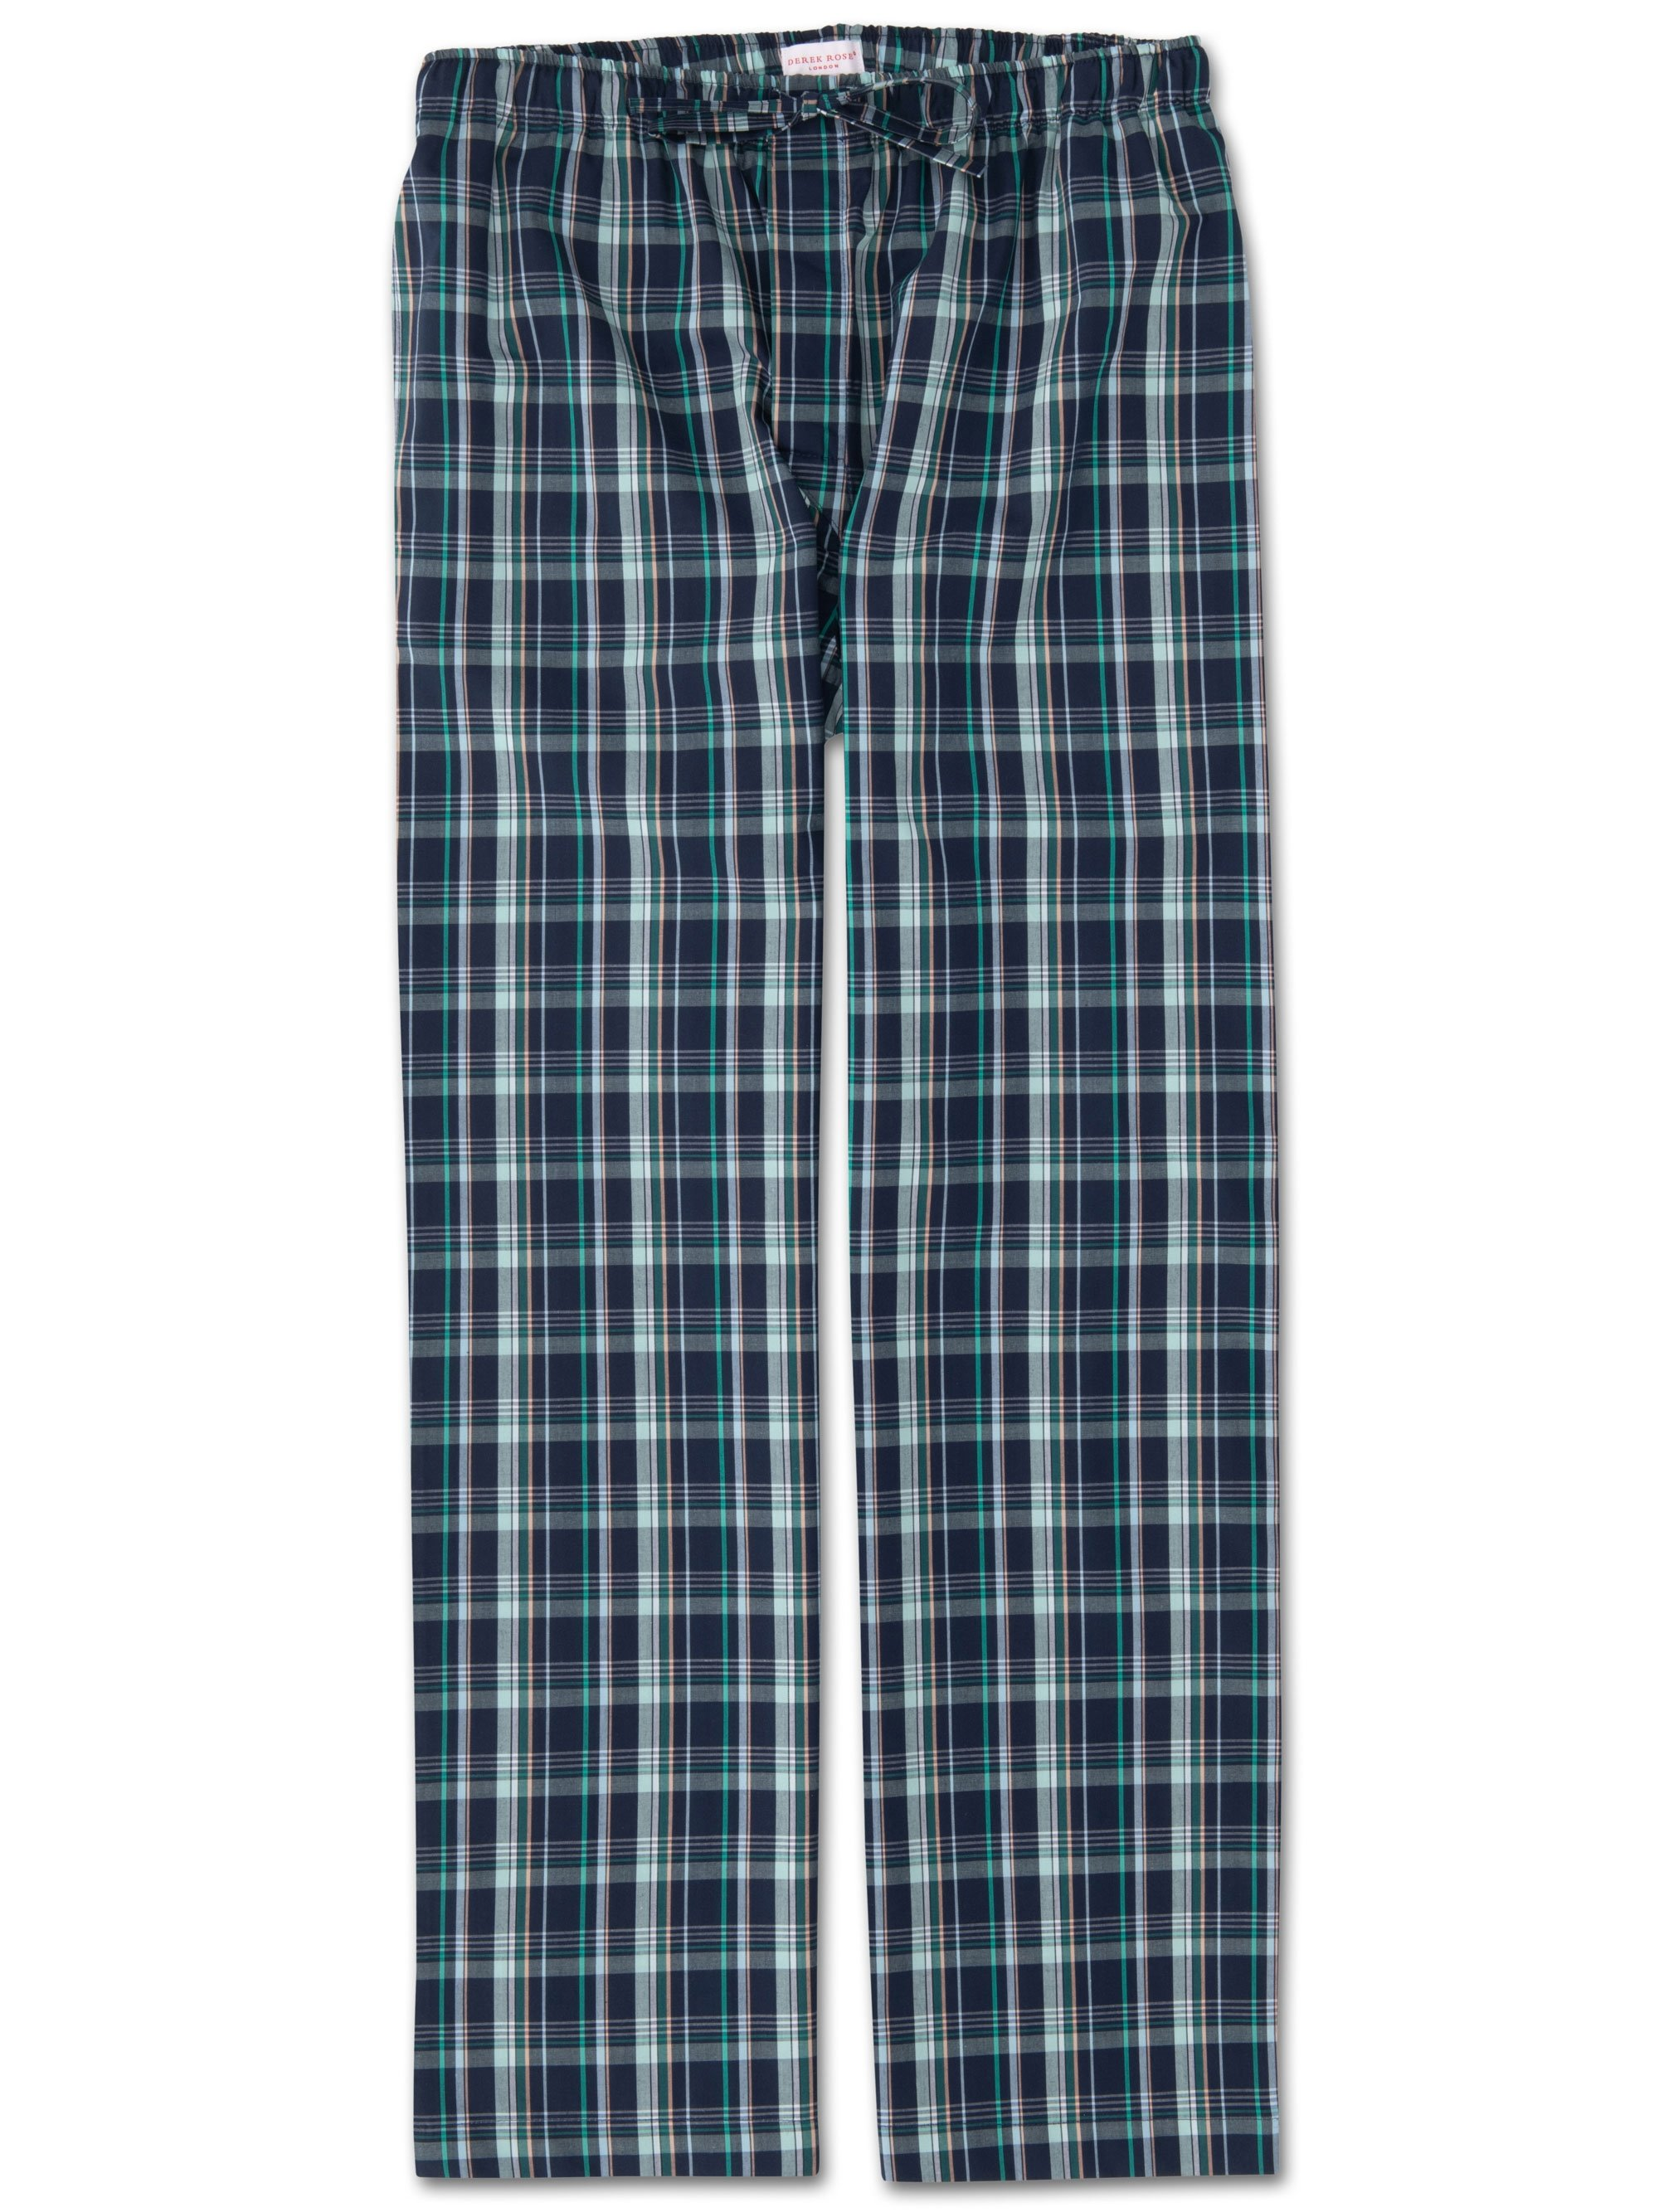 Men's Lounge Trousers Barker 21 Cotton Check Multi